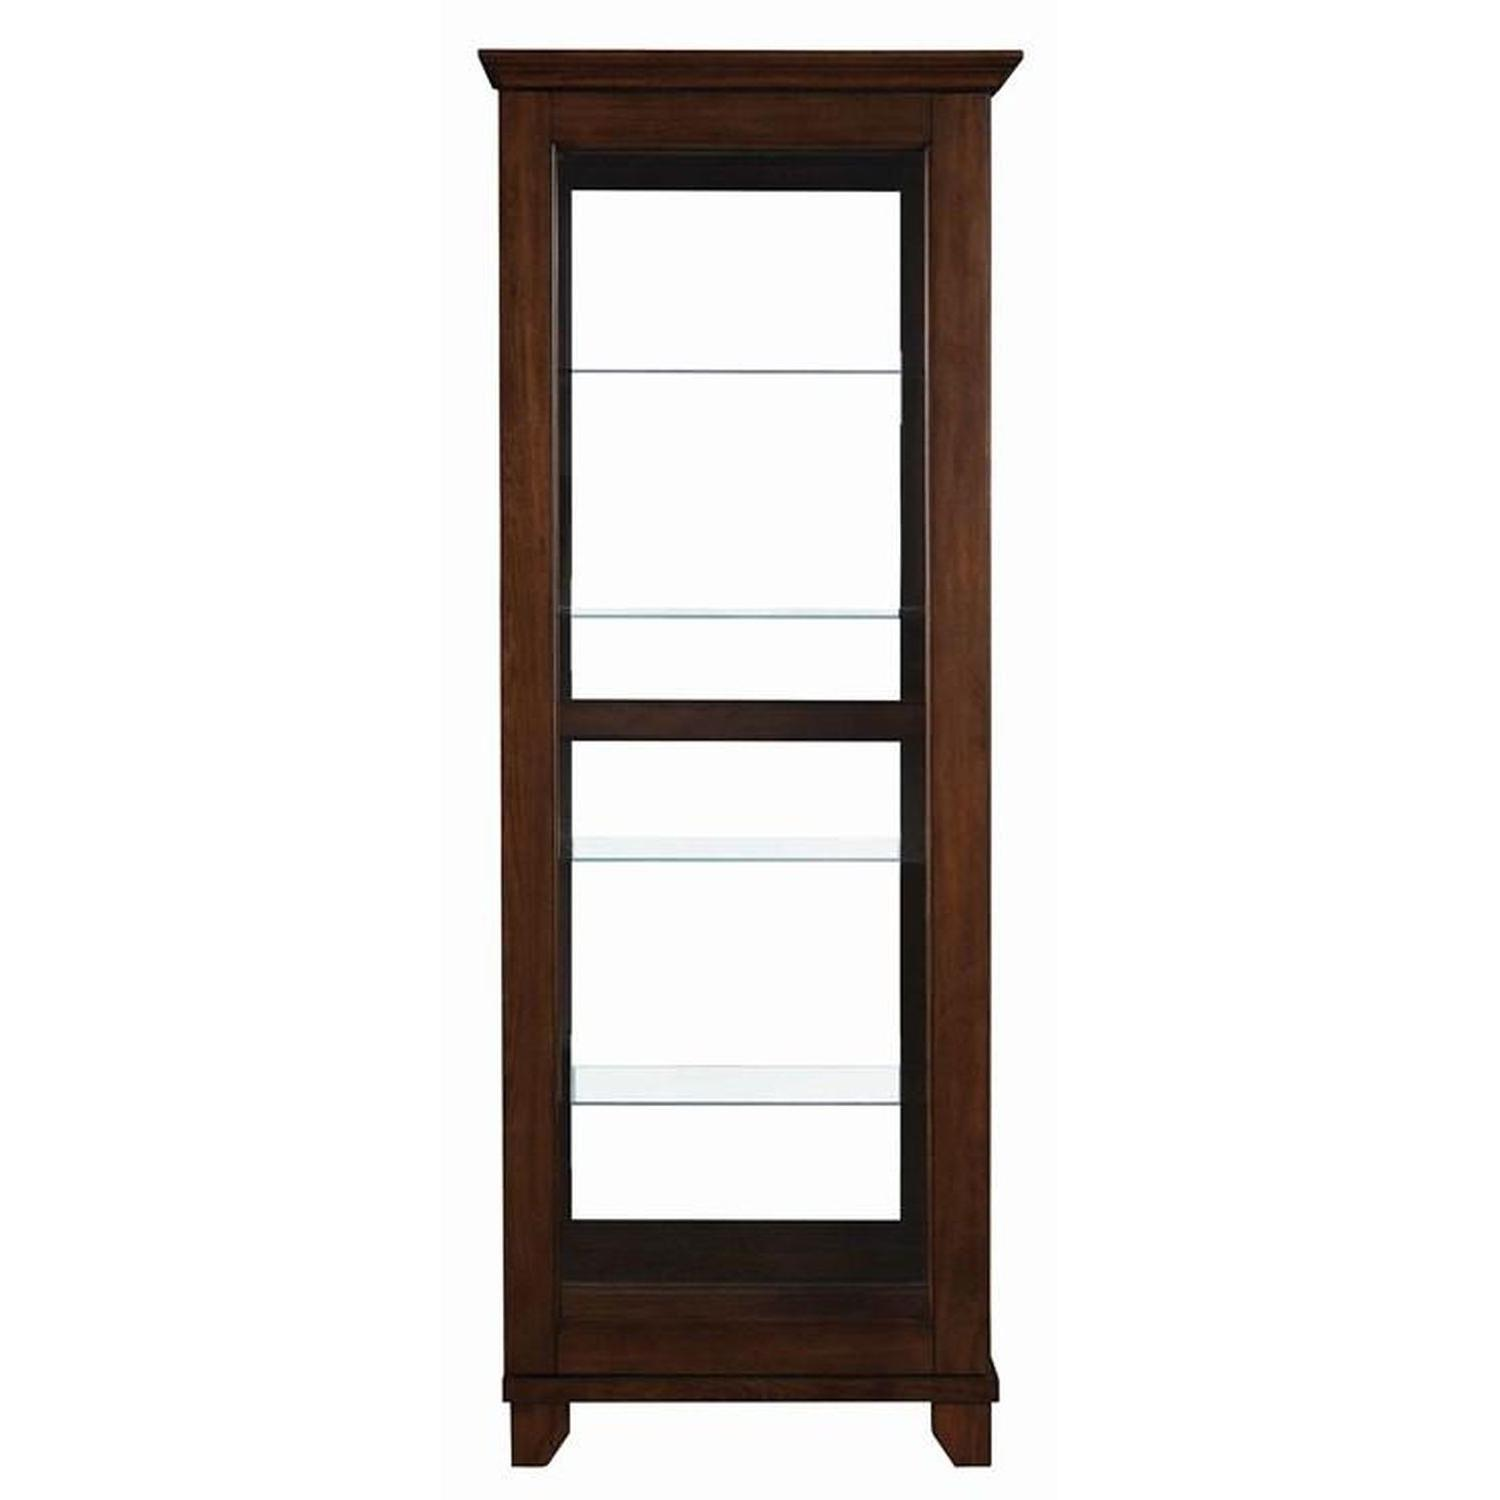 Curio Cabinet in Chestnut Finish w/ Glass Panels - image-4